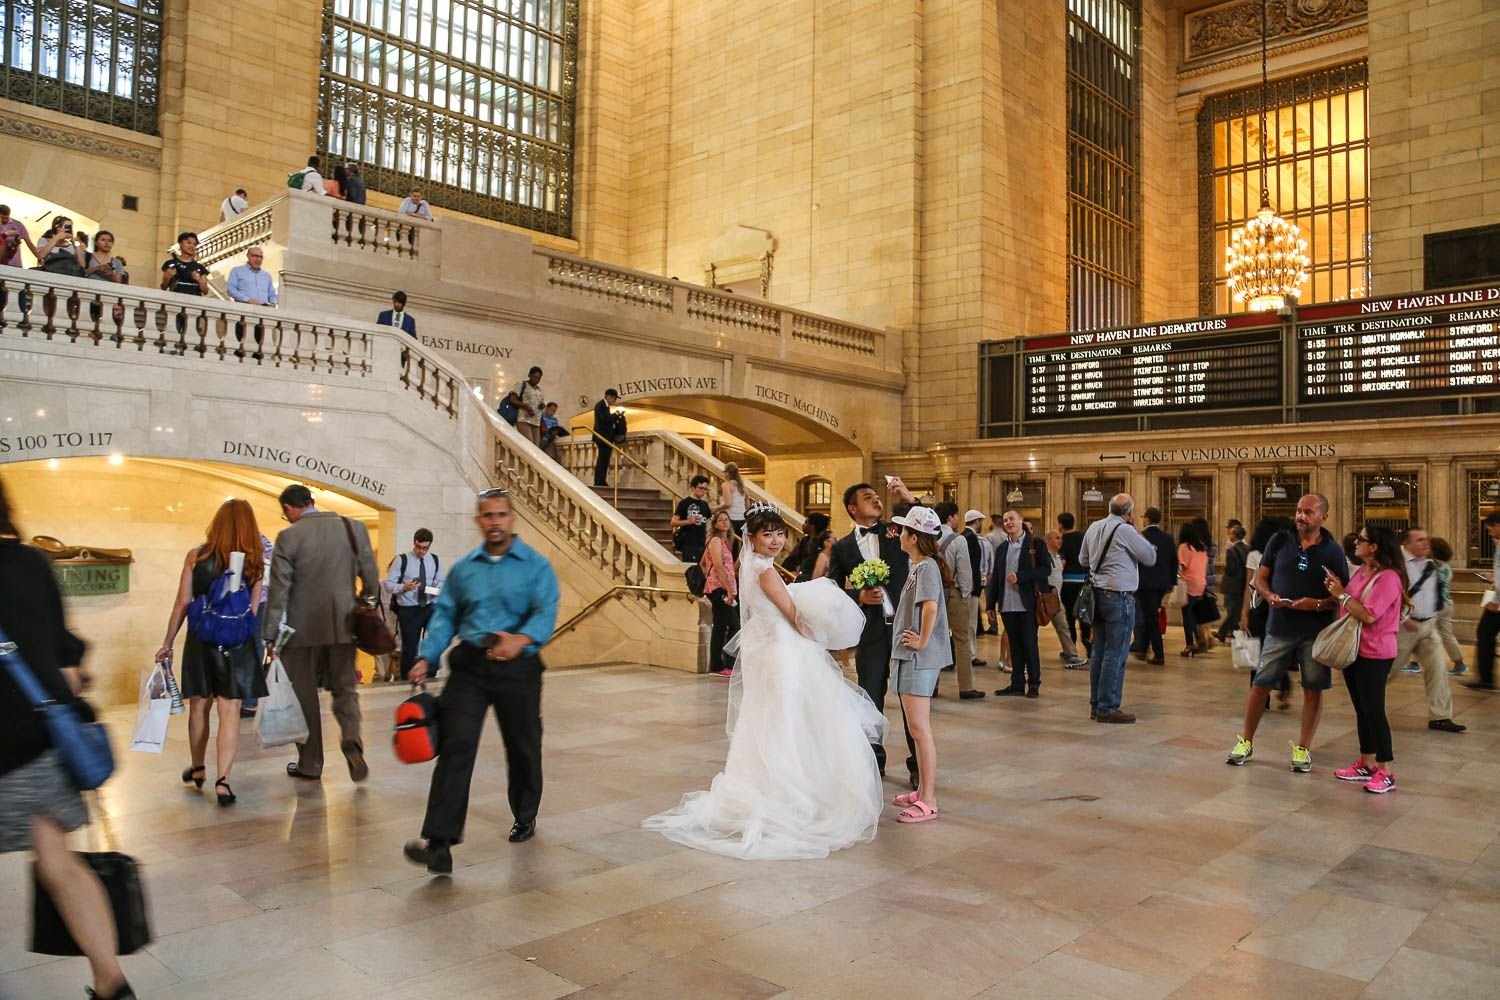 New York Grand Central Terminal: https://walleni.us/